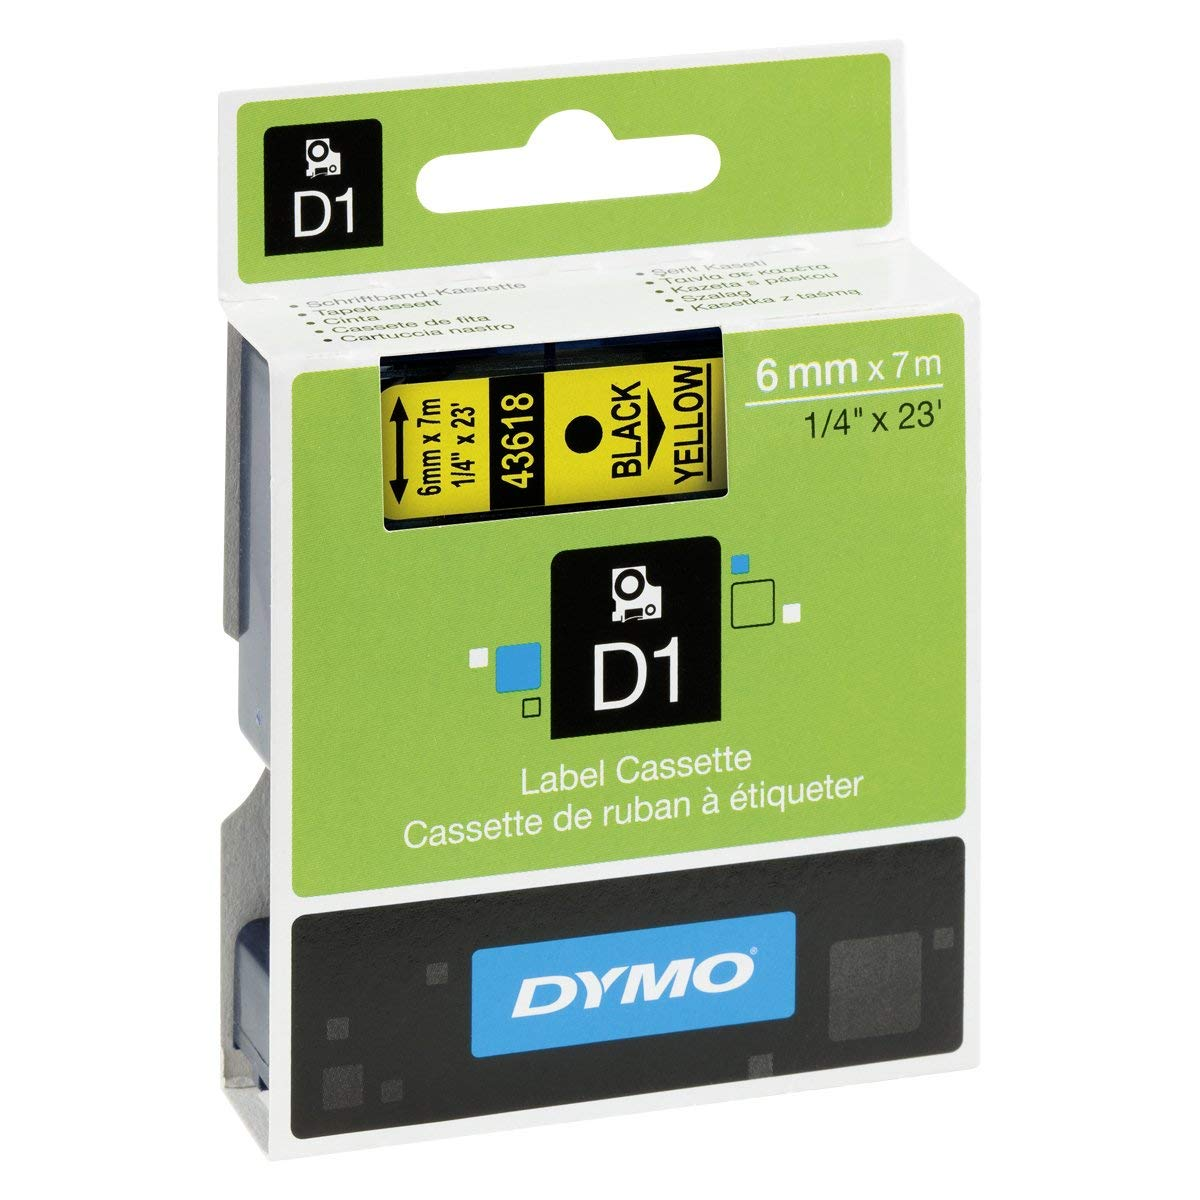 Dymo S0720790 (43618) D1 Label Tape 6mm x 7m - Black on Yellow (pc)